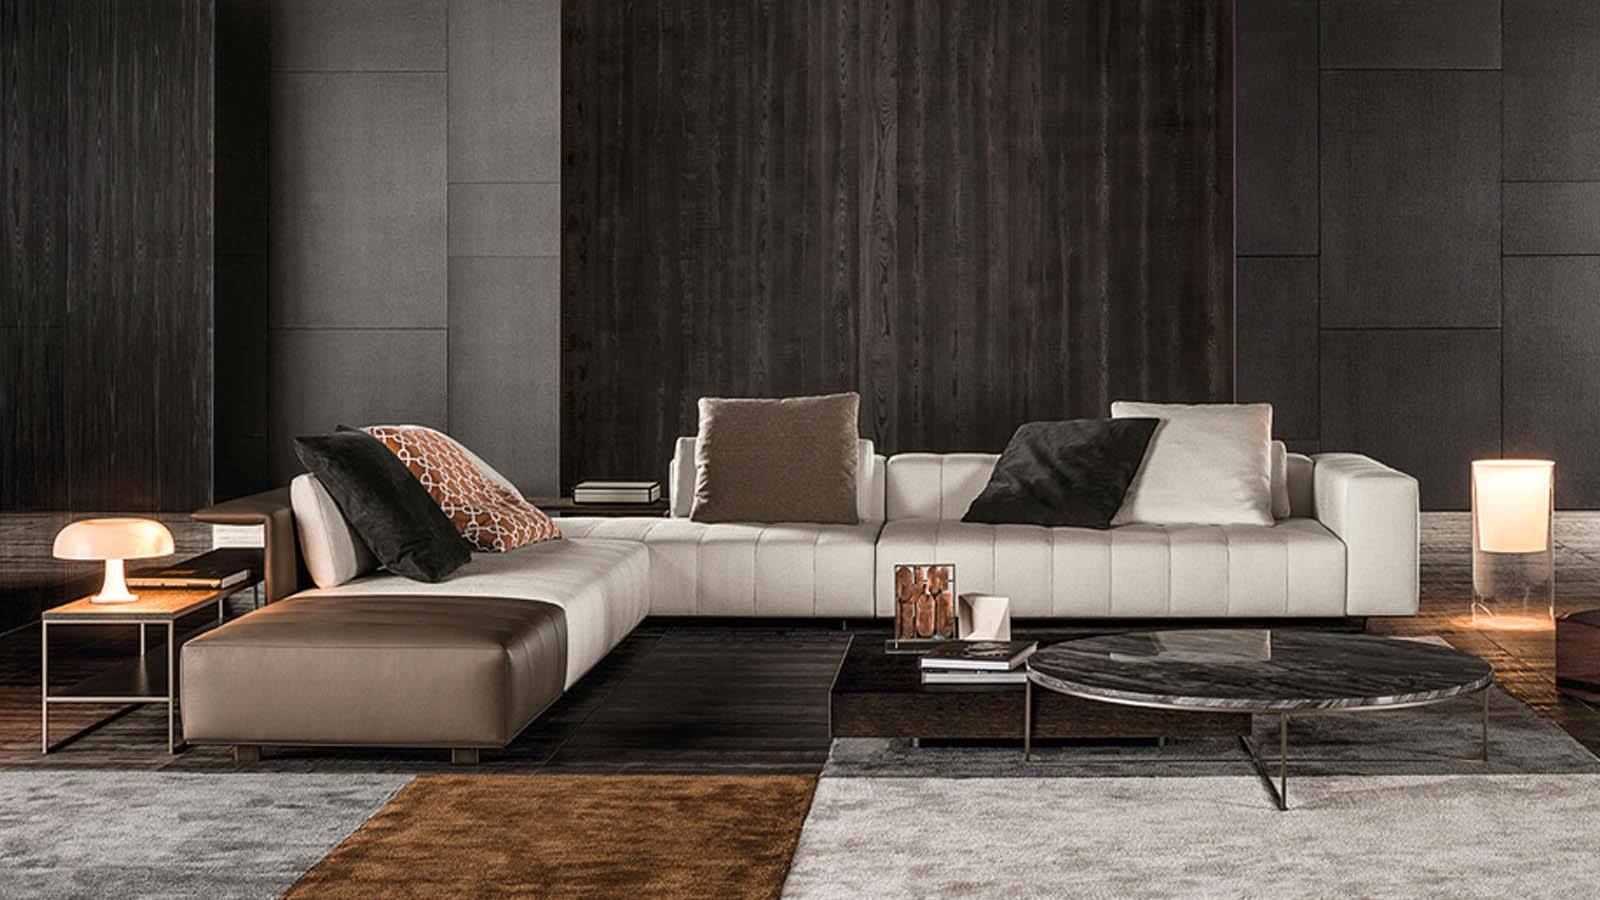 Minotti Freeman Sofa Duvet And Tailor Seating Systems - Divano Alcantara Beige